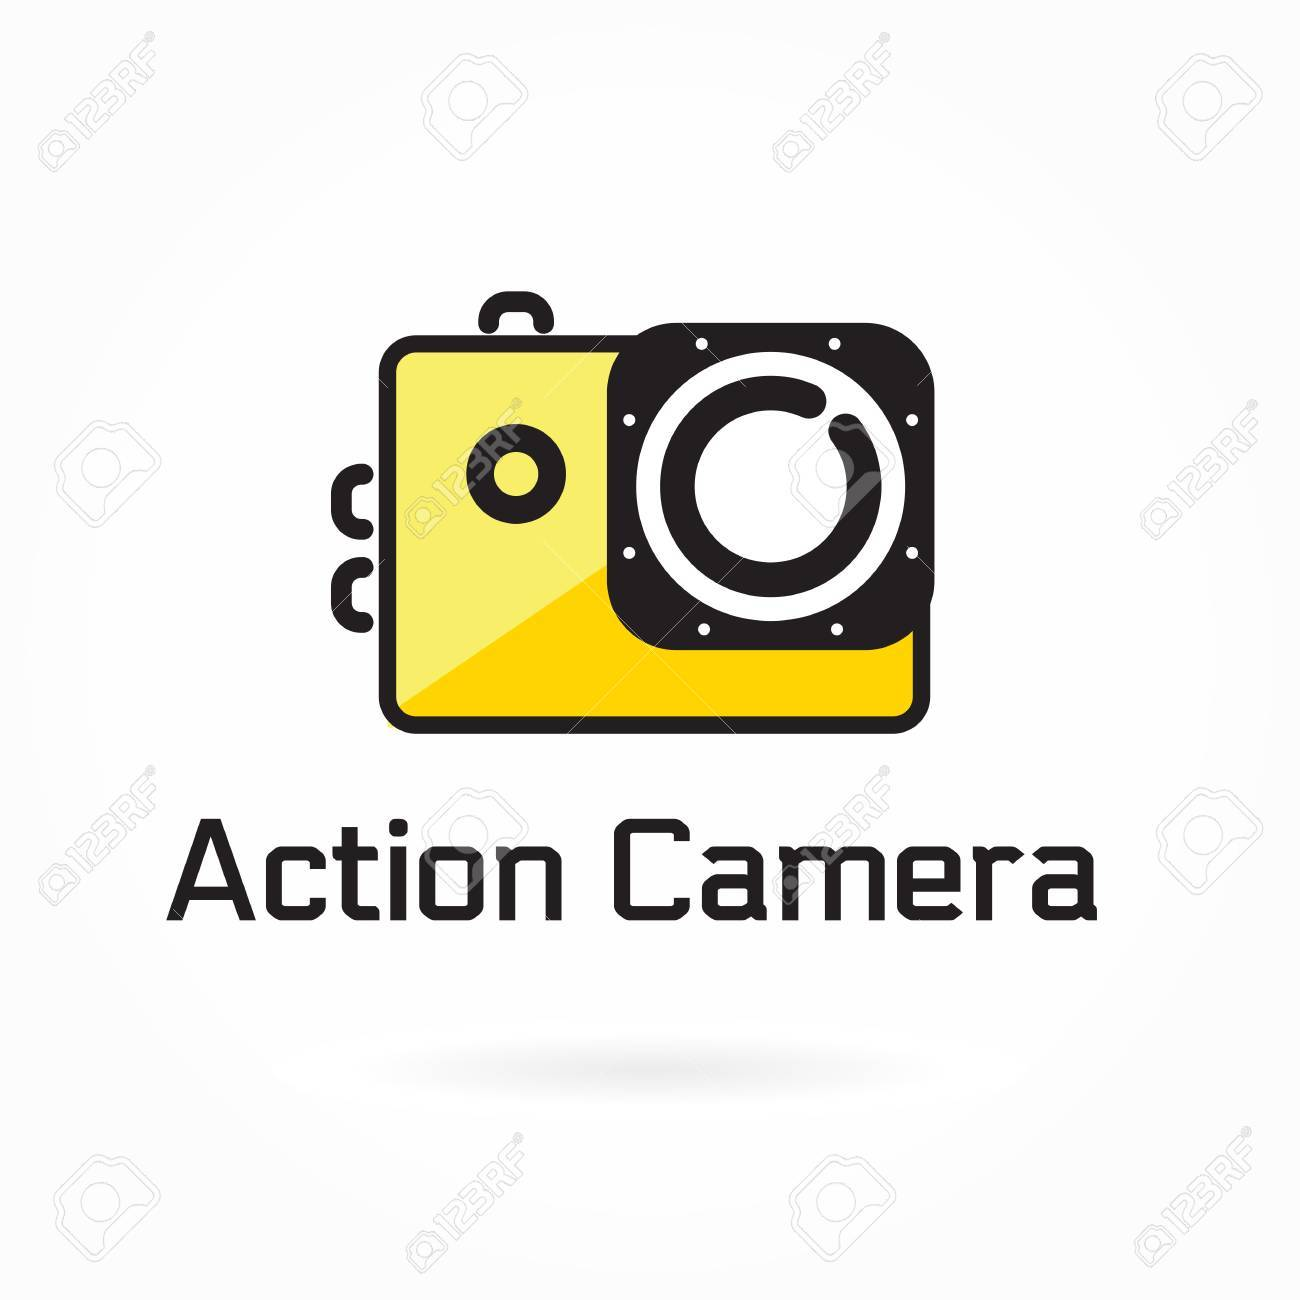 Action camera icon, vector illustration, colorful logo template,